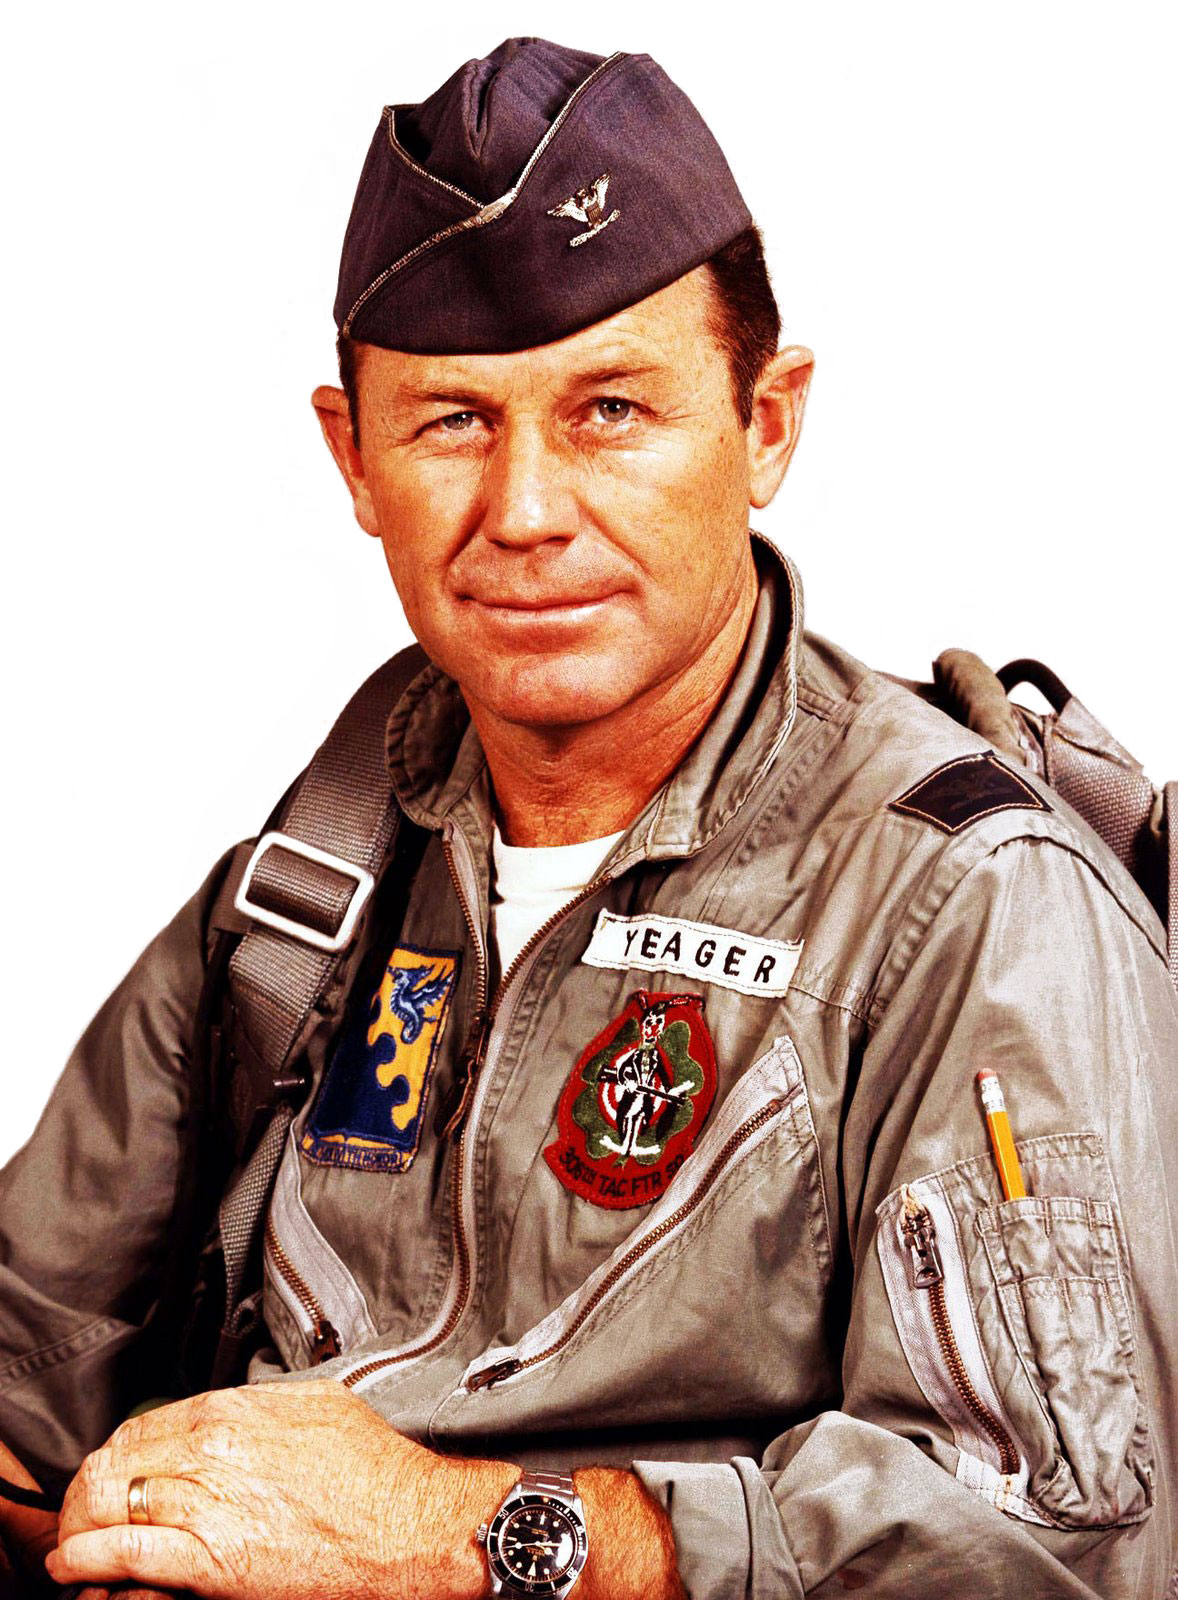 a story of the life and career of chuck yeager Captain chuck yeager with the x-1 supersonic research aircraft in 1947, shortly after breaking the sound barrier shot down over enemy territory only one day after his first kill in 1943, yeager evaded capture, and with the aid of the french resistance, made his way across the pyrenees to neutral spain.